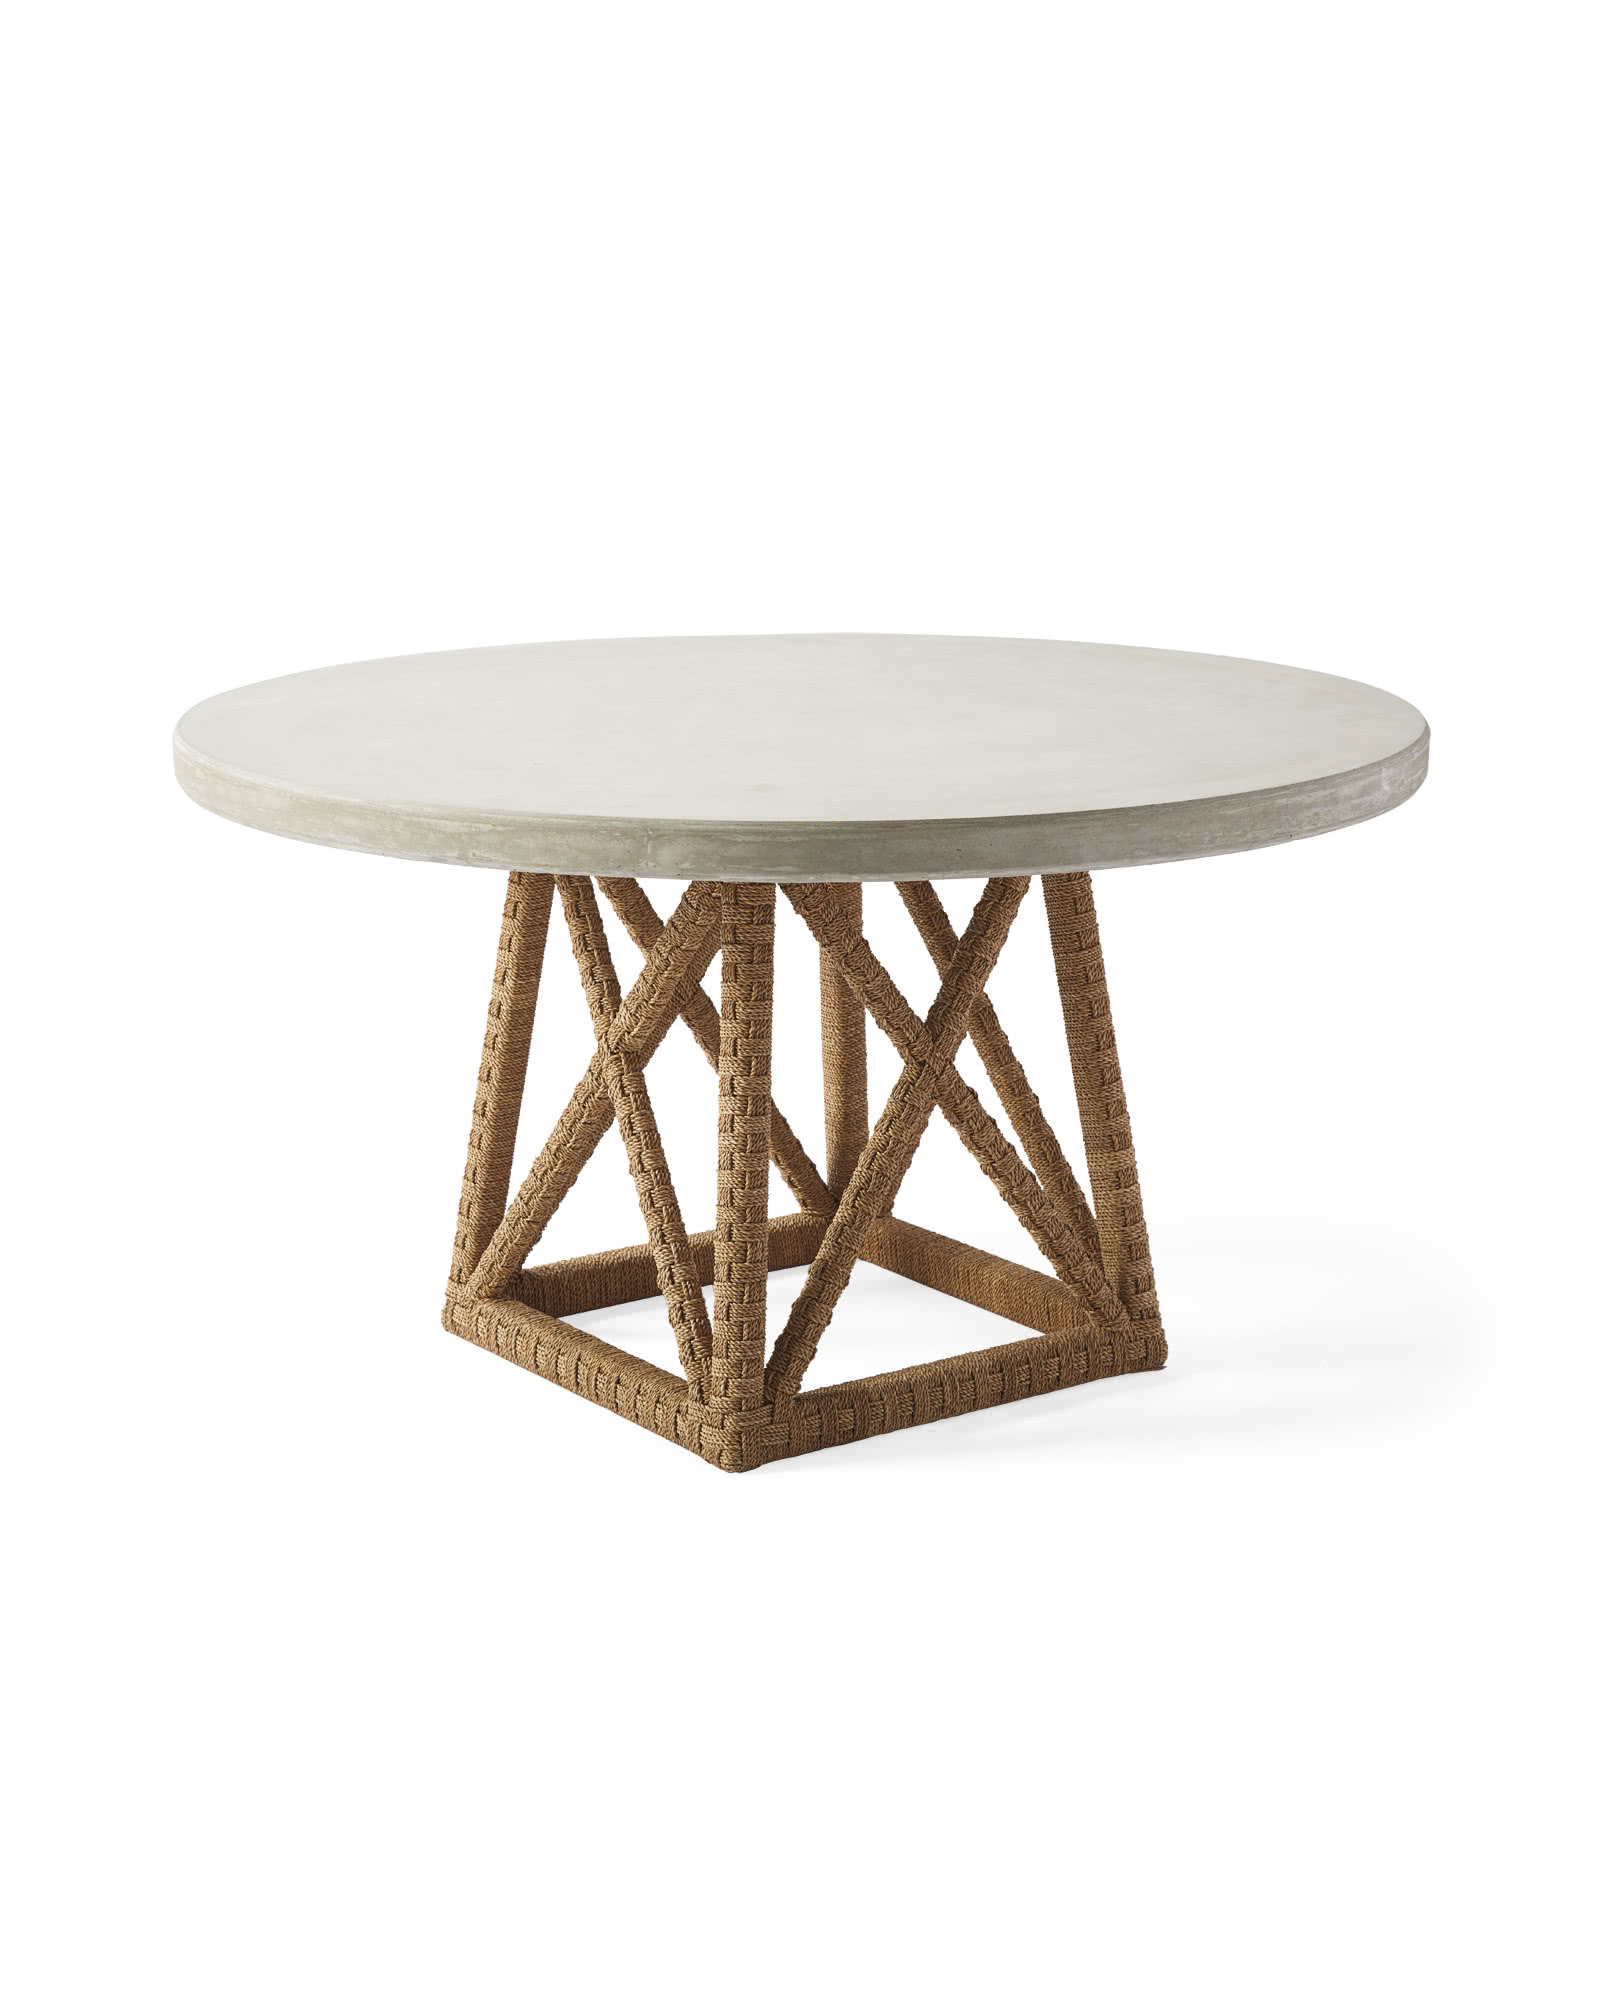 Thornhill Round Dining Table, Fog